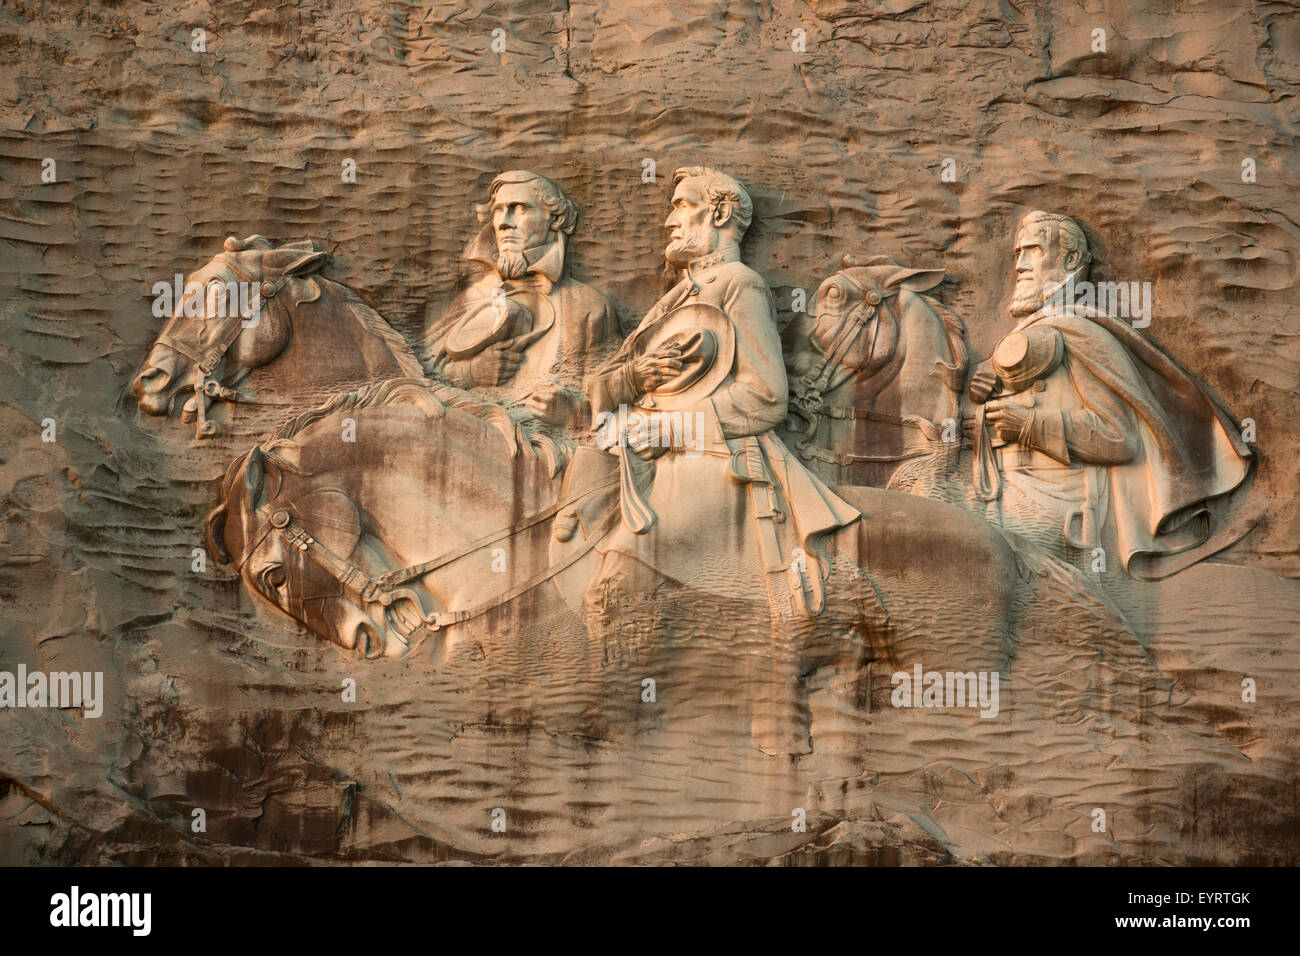 Bas relief carving of confederate american civil war